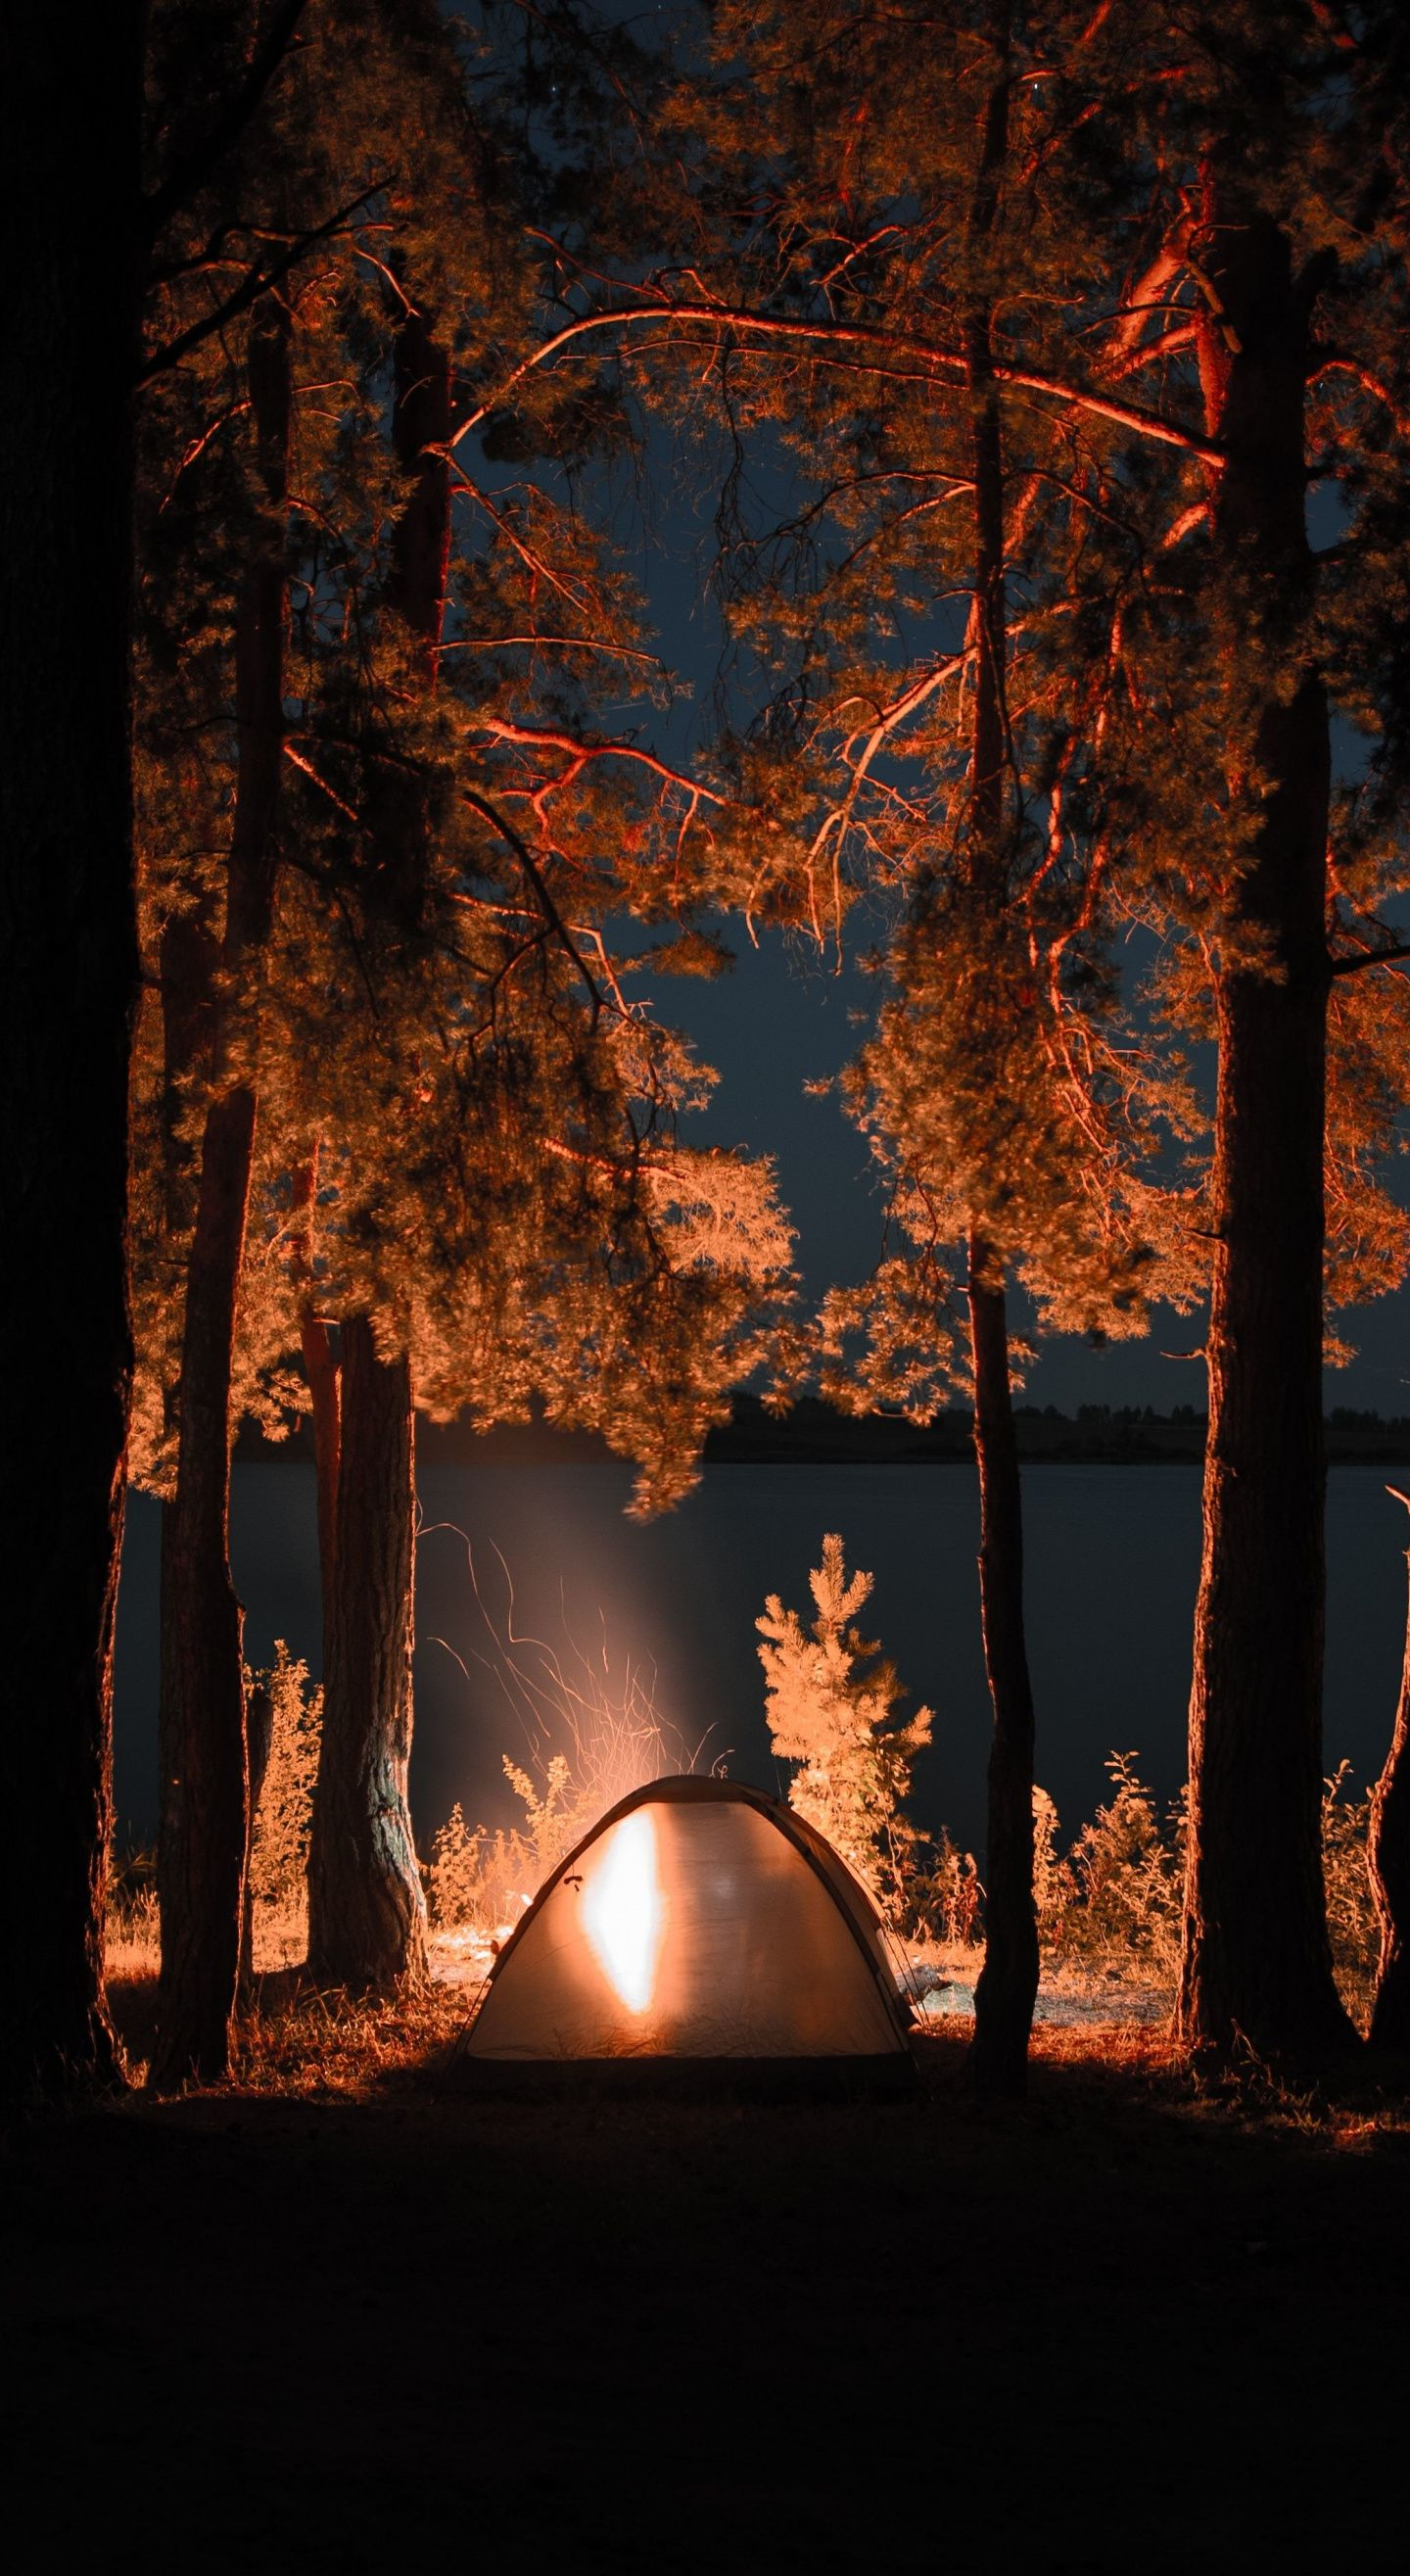 1440x2630 Outing Campfire Trees Tent Night Wallpaper Nature Wallpaper Wallpaper Nature